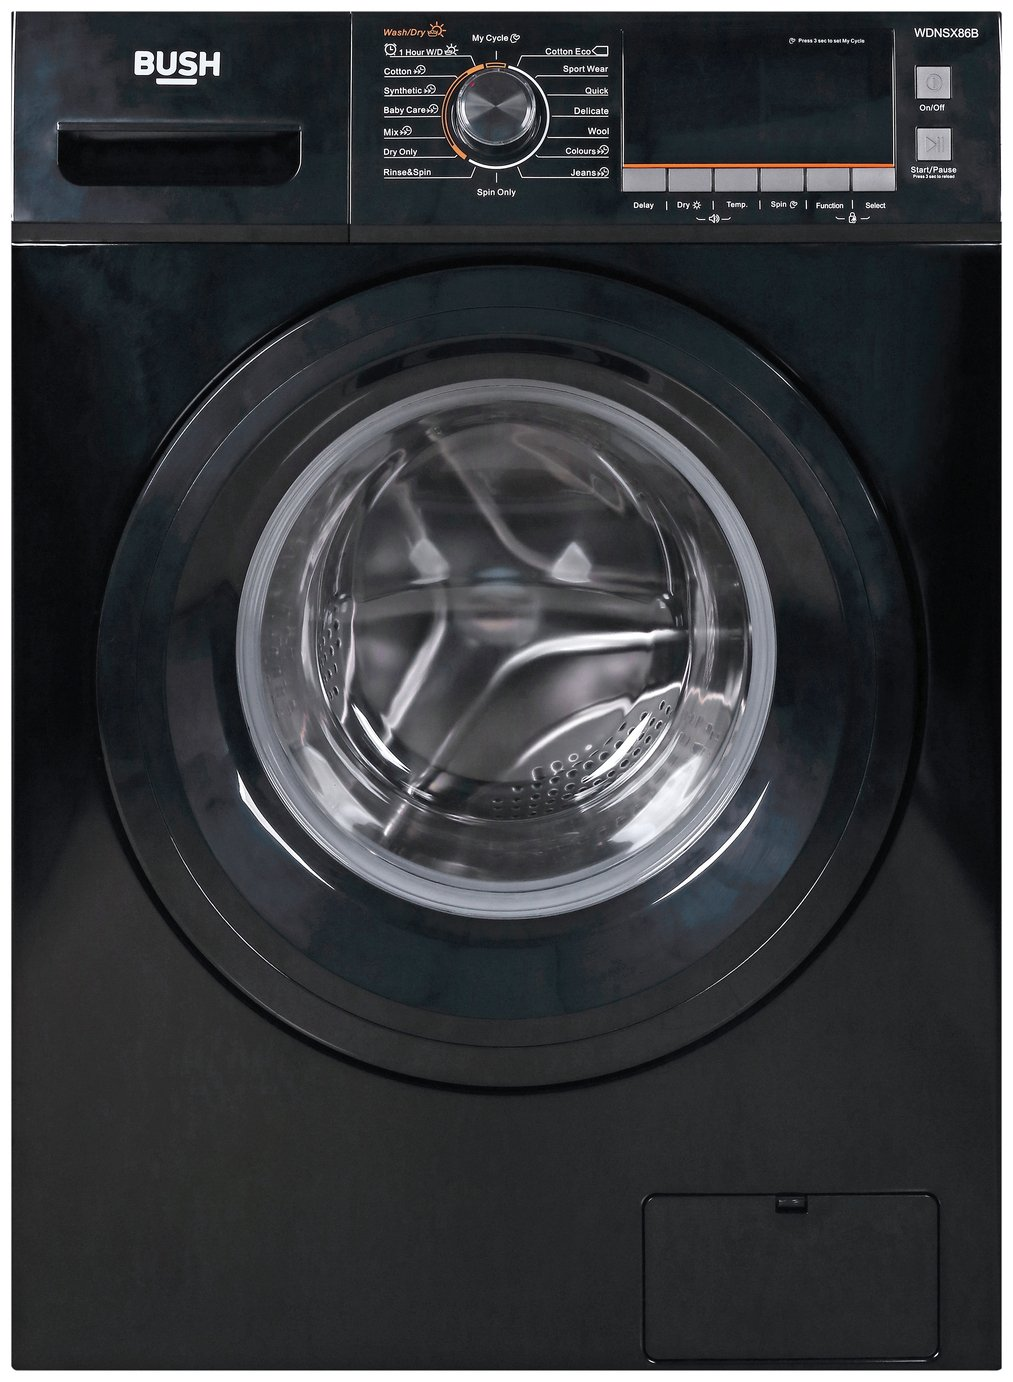 Bush WDNSX86B 8KG / 6KG 1400 Spin Washer Dryer - Black